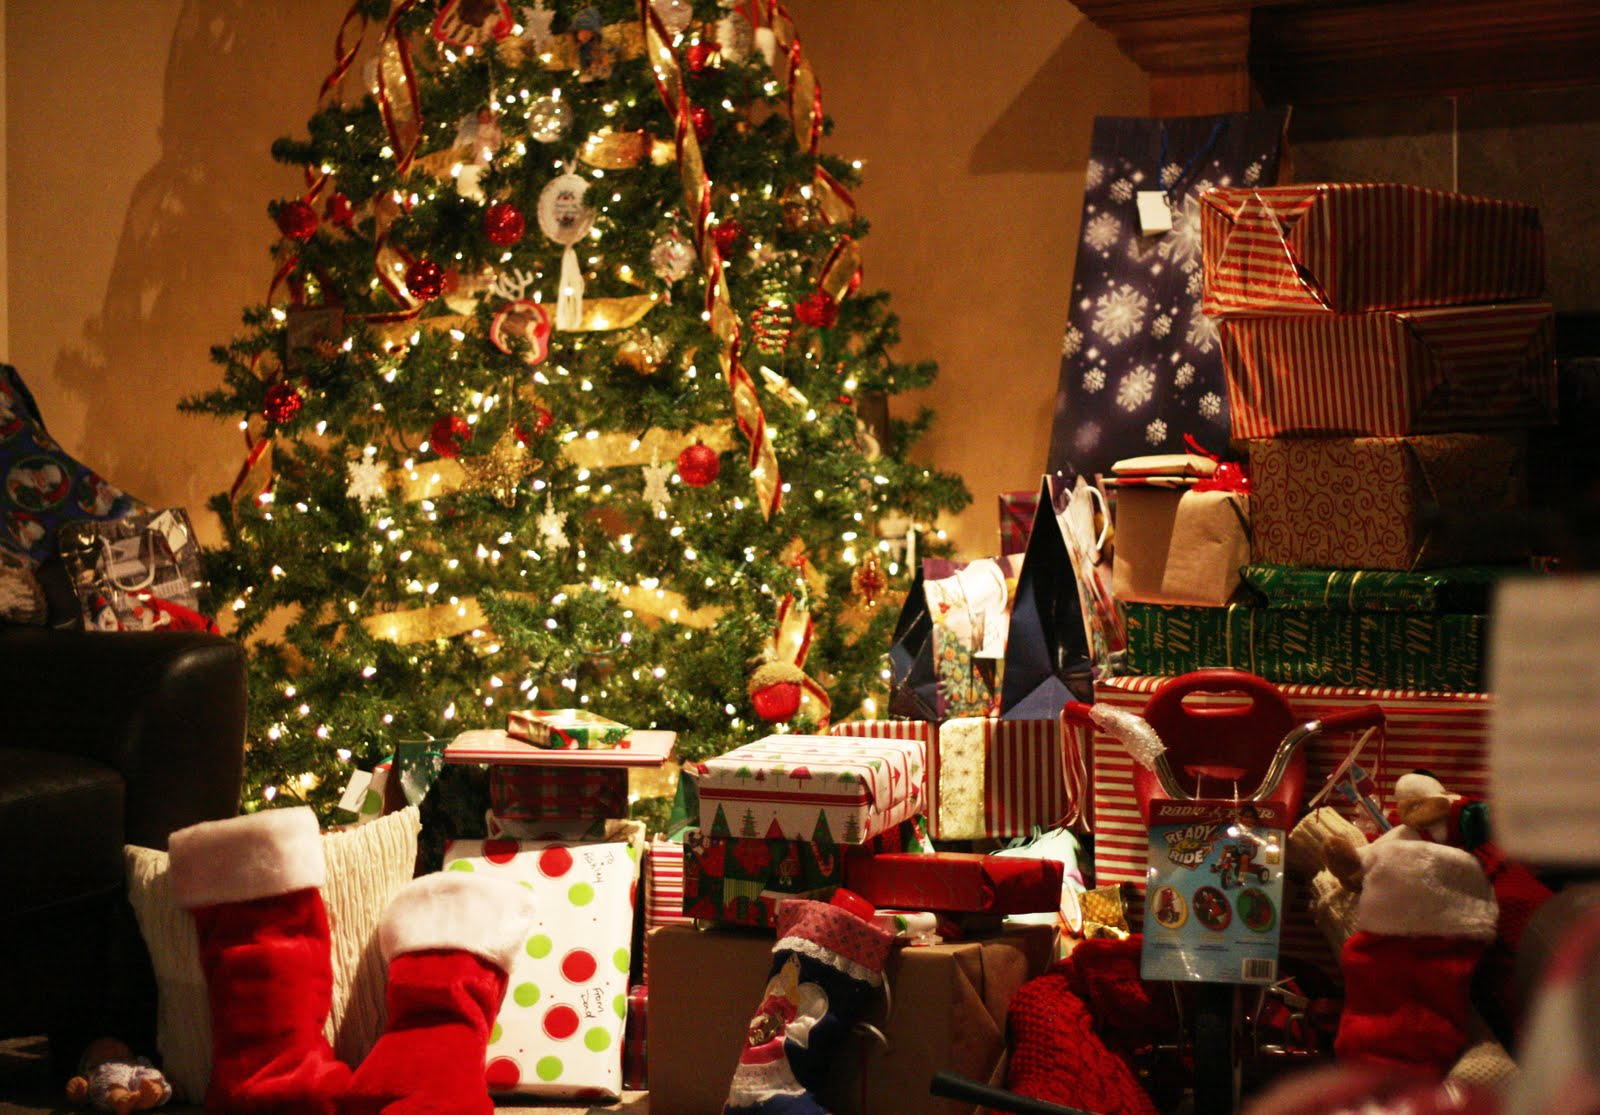 Christmas Gifts For Parents 2019.Merry Christmas Gift Ideas 2019 For Dad And Mom Christmas